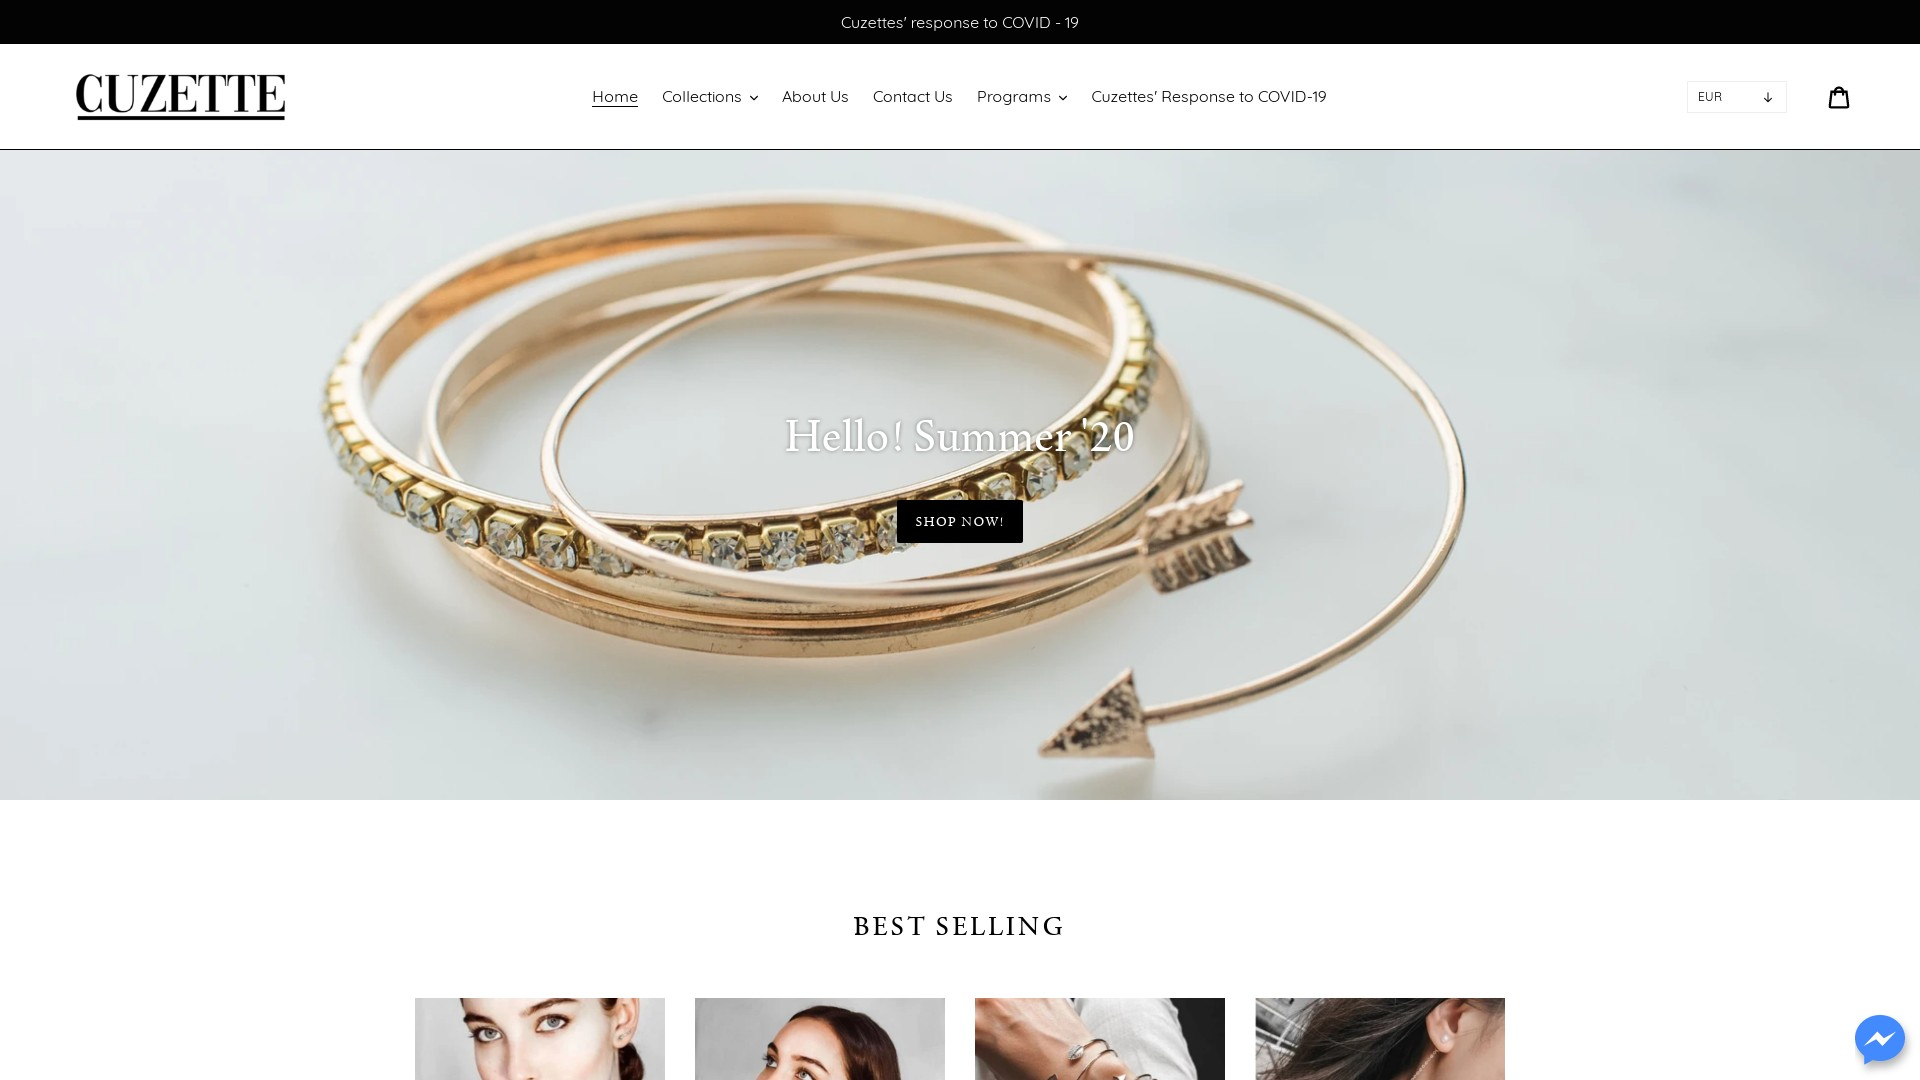 Is Cuzette Jewelry a Scam? Review of the Online Store